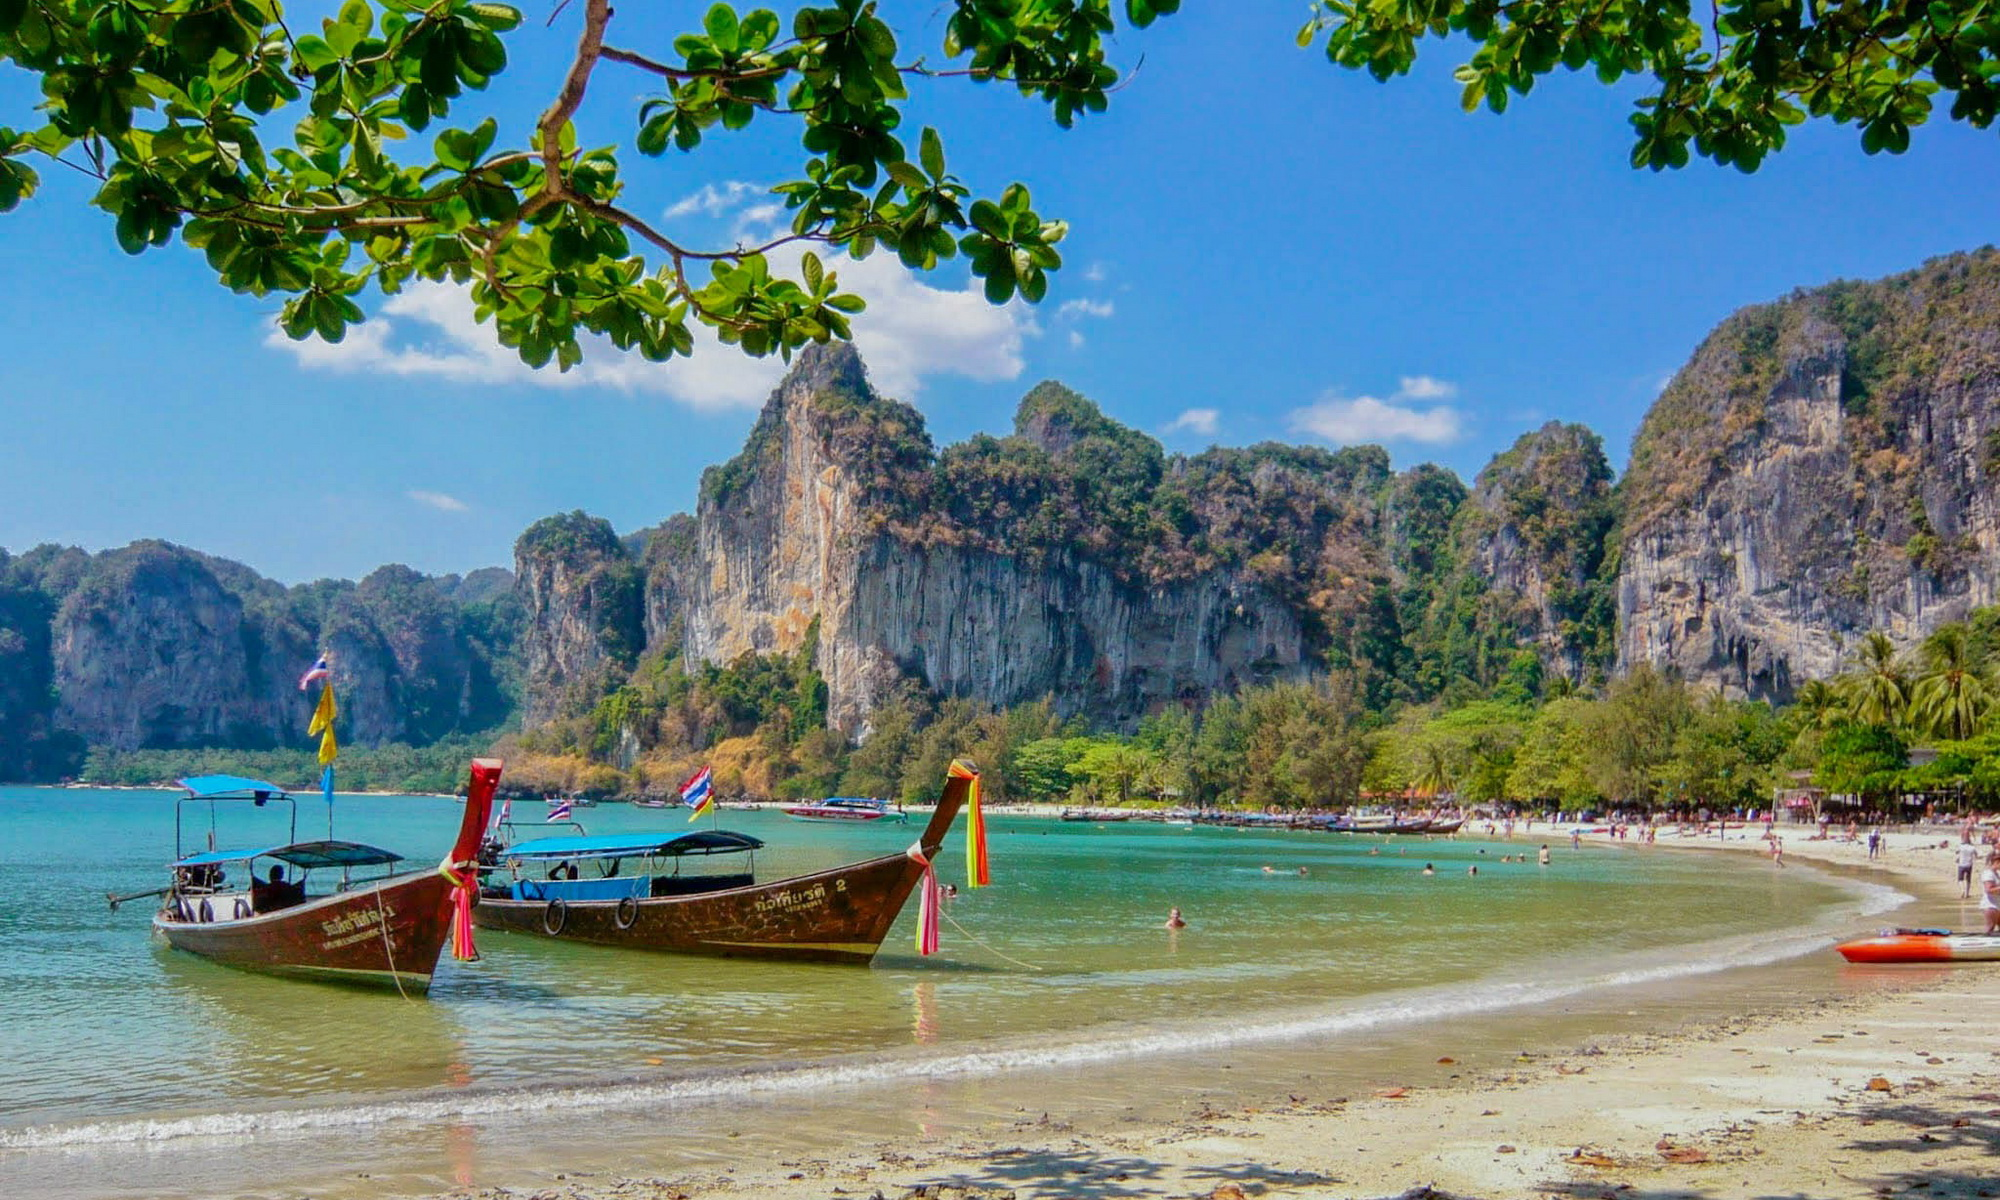 Railay Dive Center